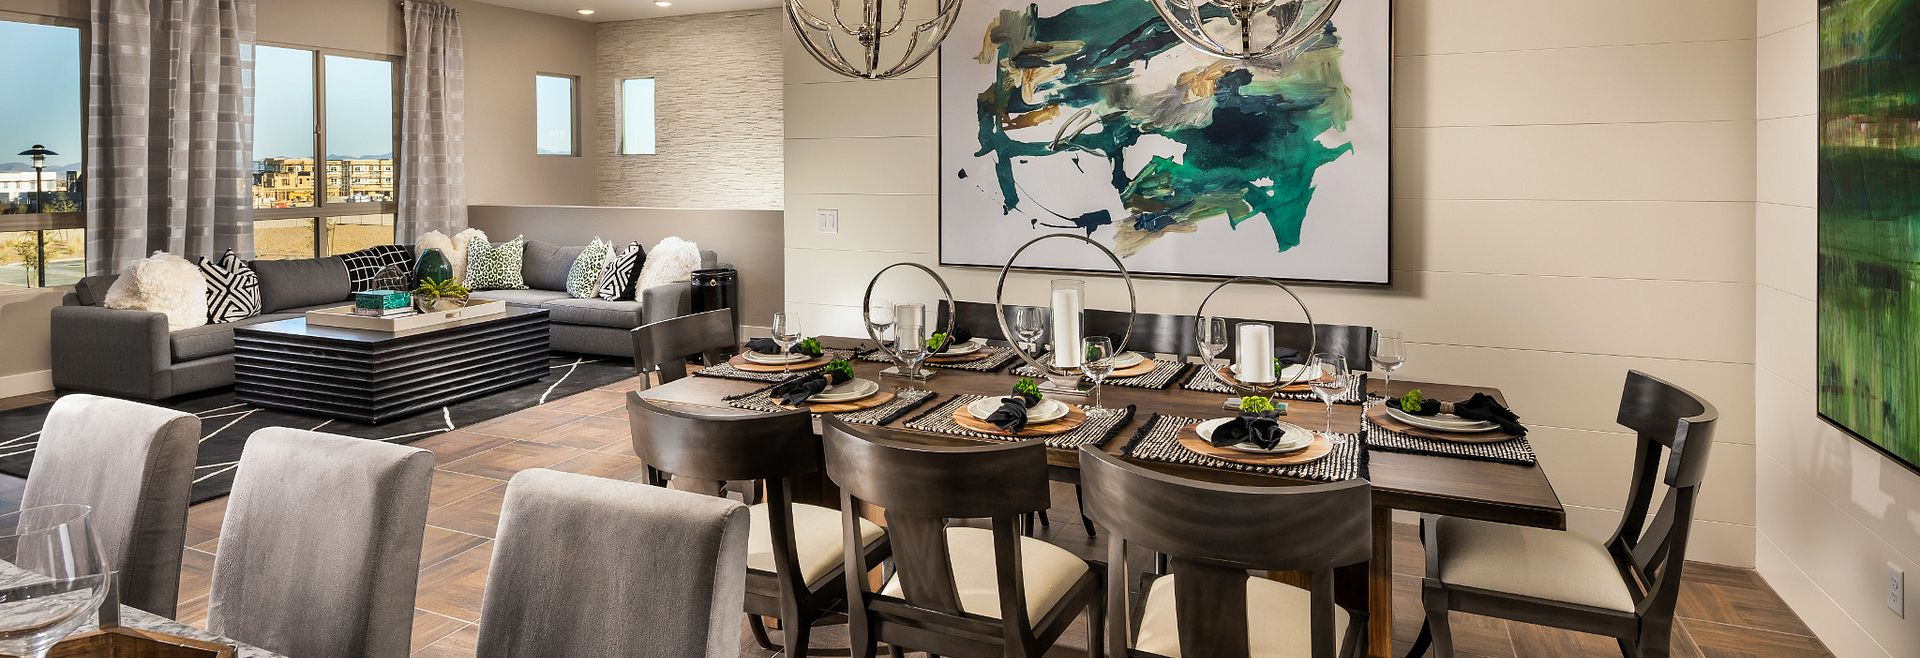 Trilogy Summerlin Viewpoint Dining